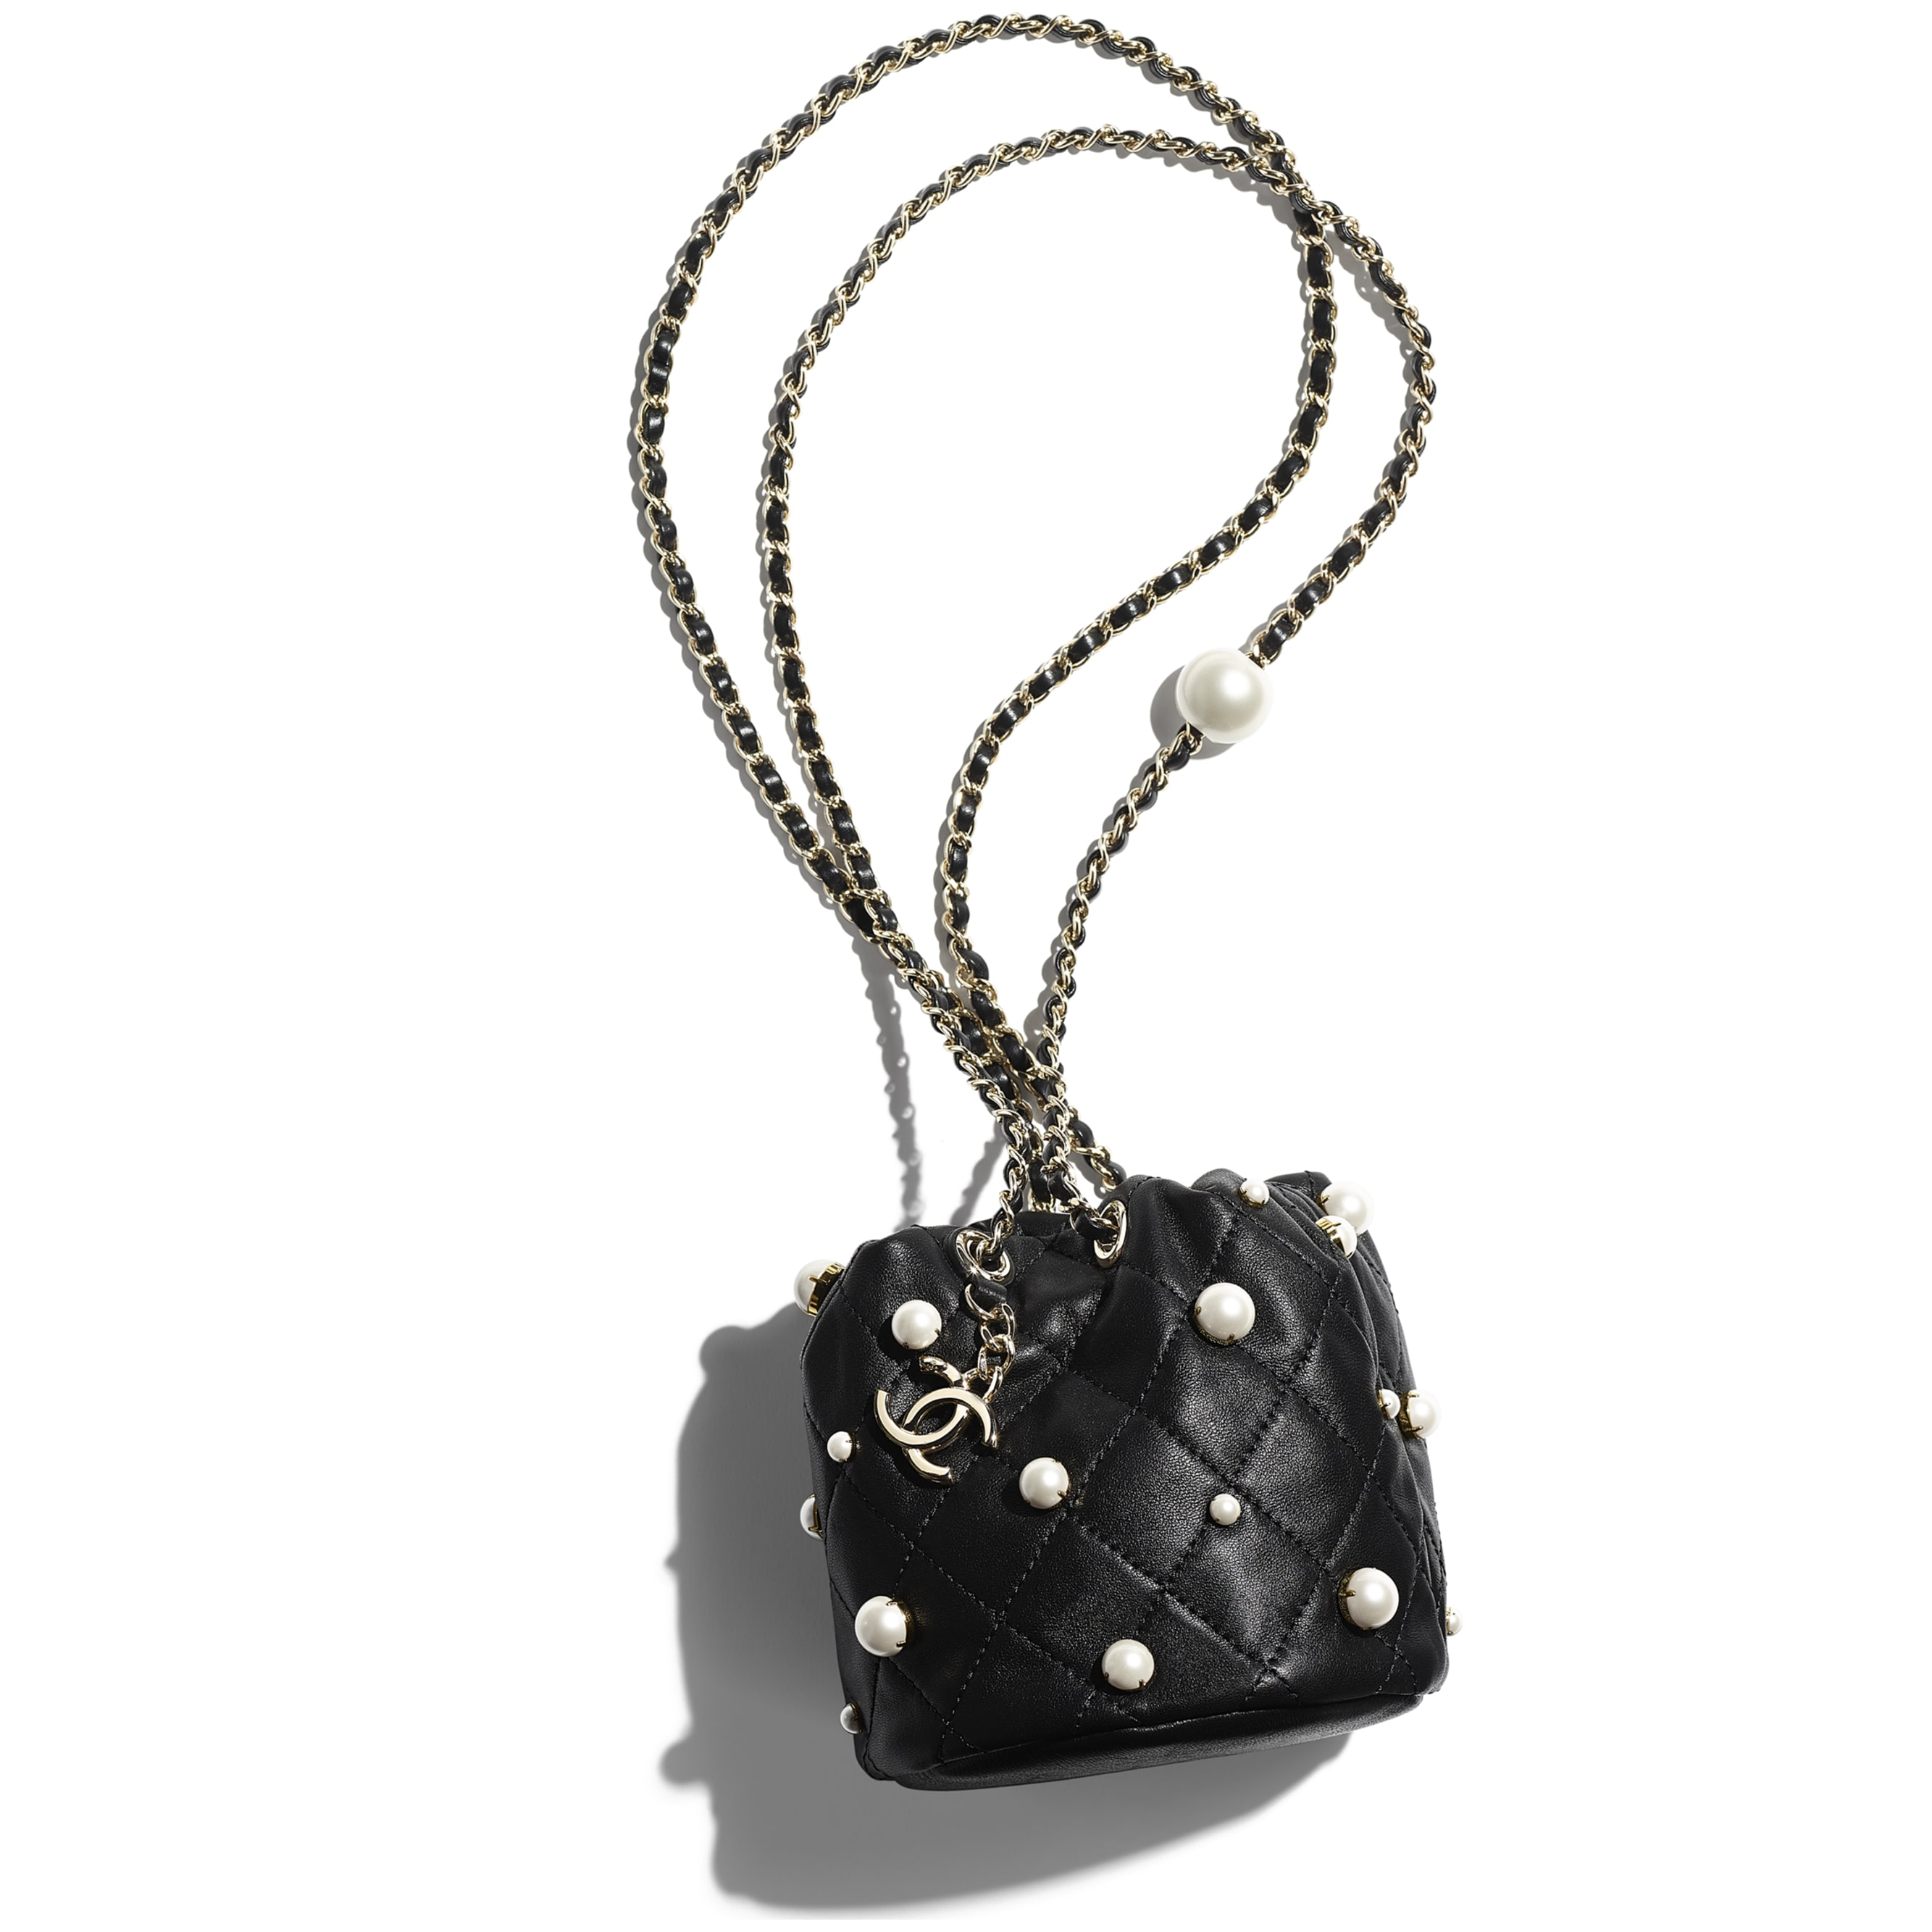 Mini Drawstring Bag - Black - Lambskin, Imitation Pearls & Gold Metal - CHANEL - Extra view - see standard sized version